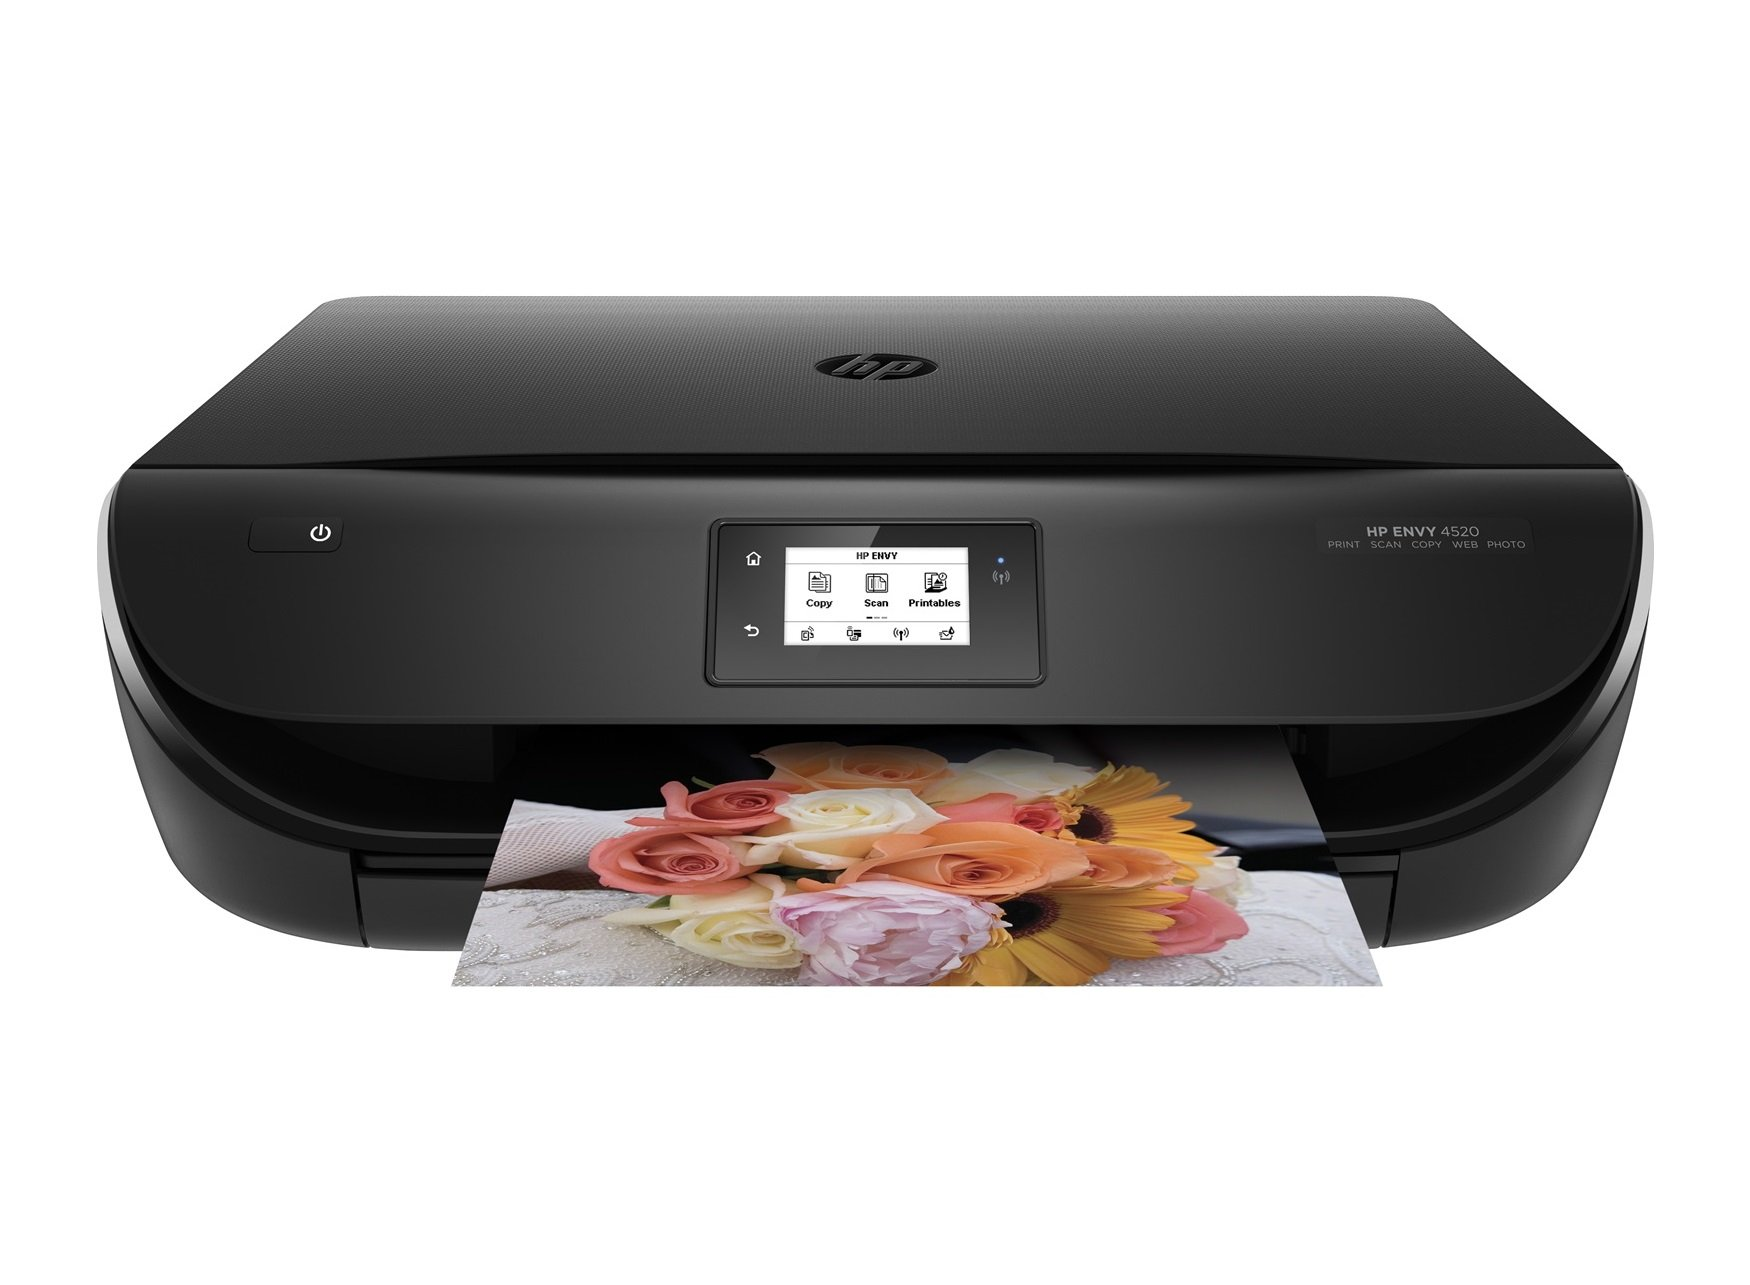 HP Envy 4520 Wireless All-in-One Photo Printer with Mobile Printing, Standard Ink Included, in Black (Certified Refurbished)